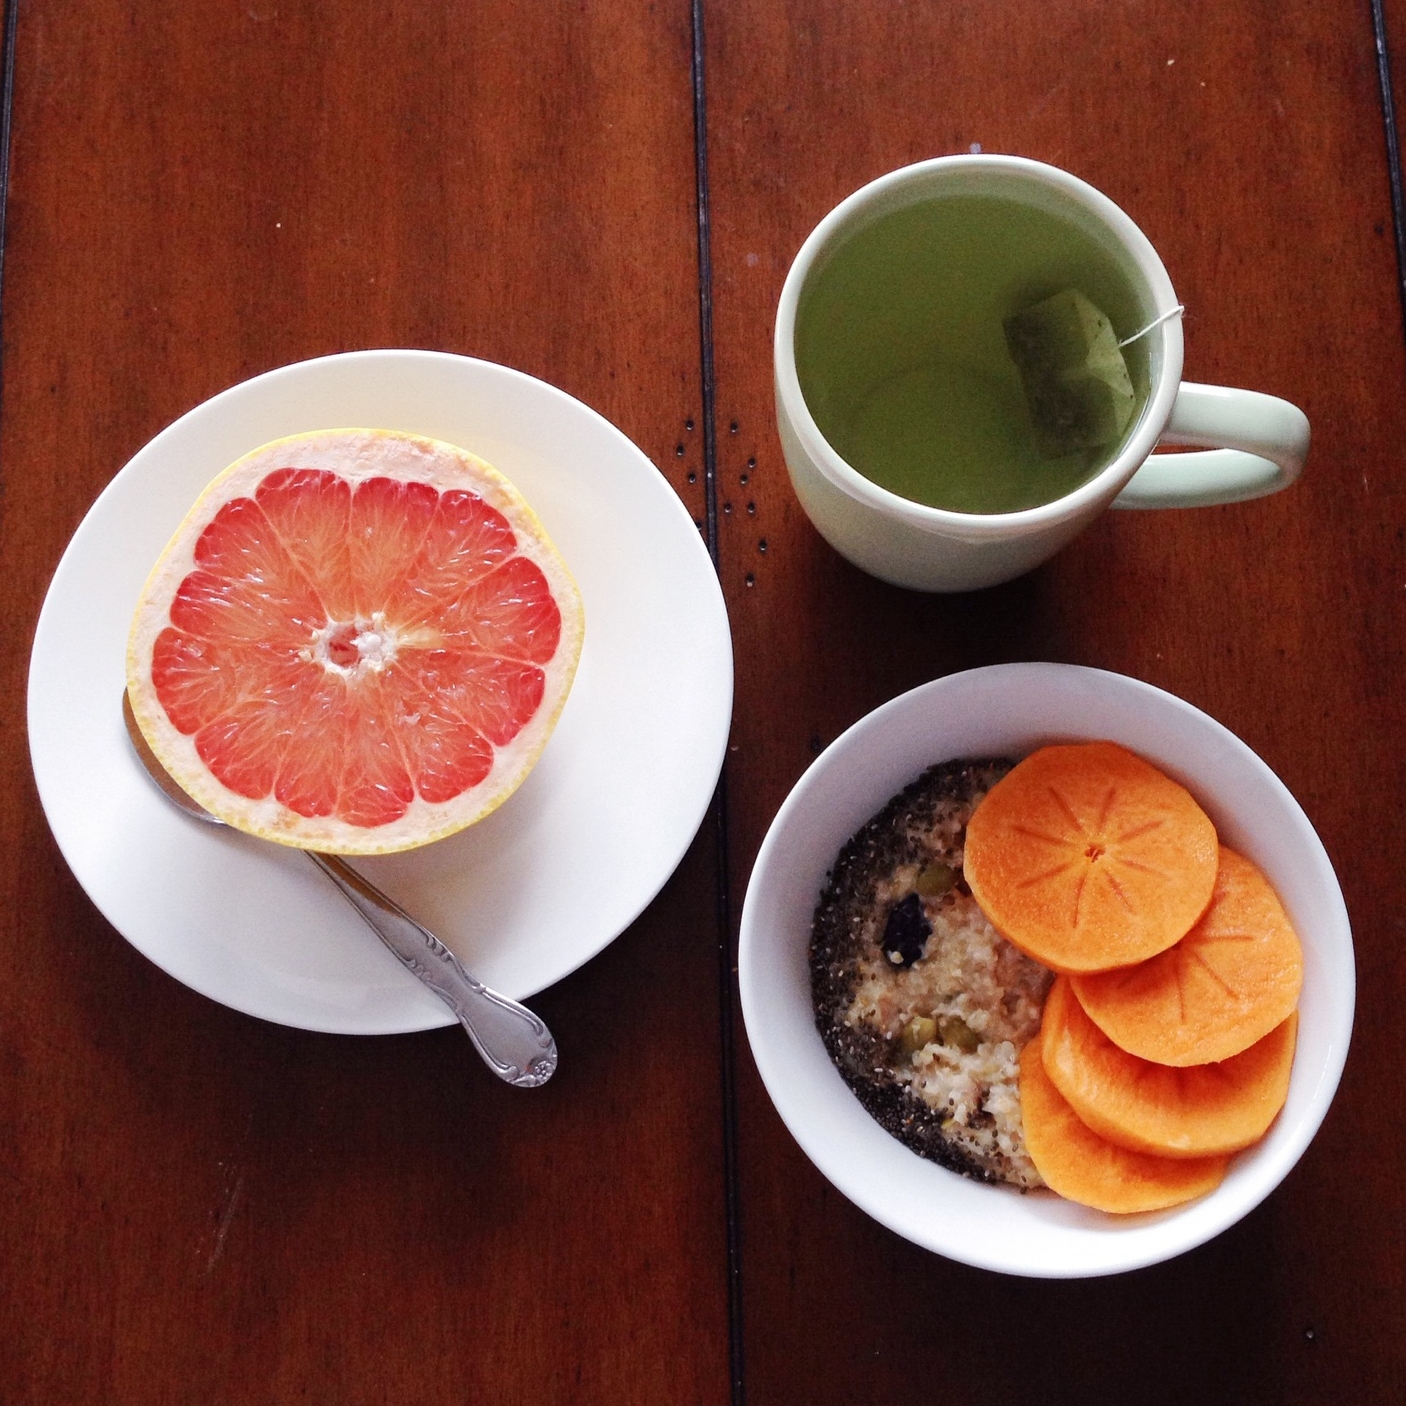 Love healthy breakfasts:  Purely Elizabeth  ancient grain oatmeal w/chia seeds & persimmon, grapefruit, green tea.